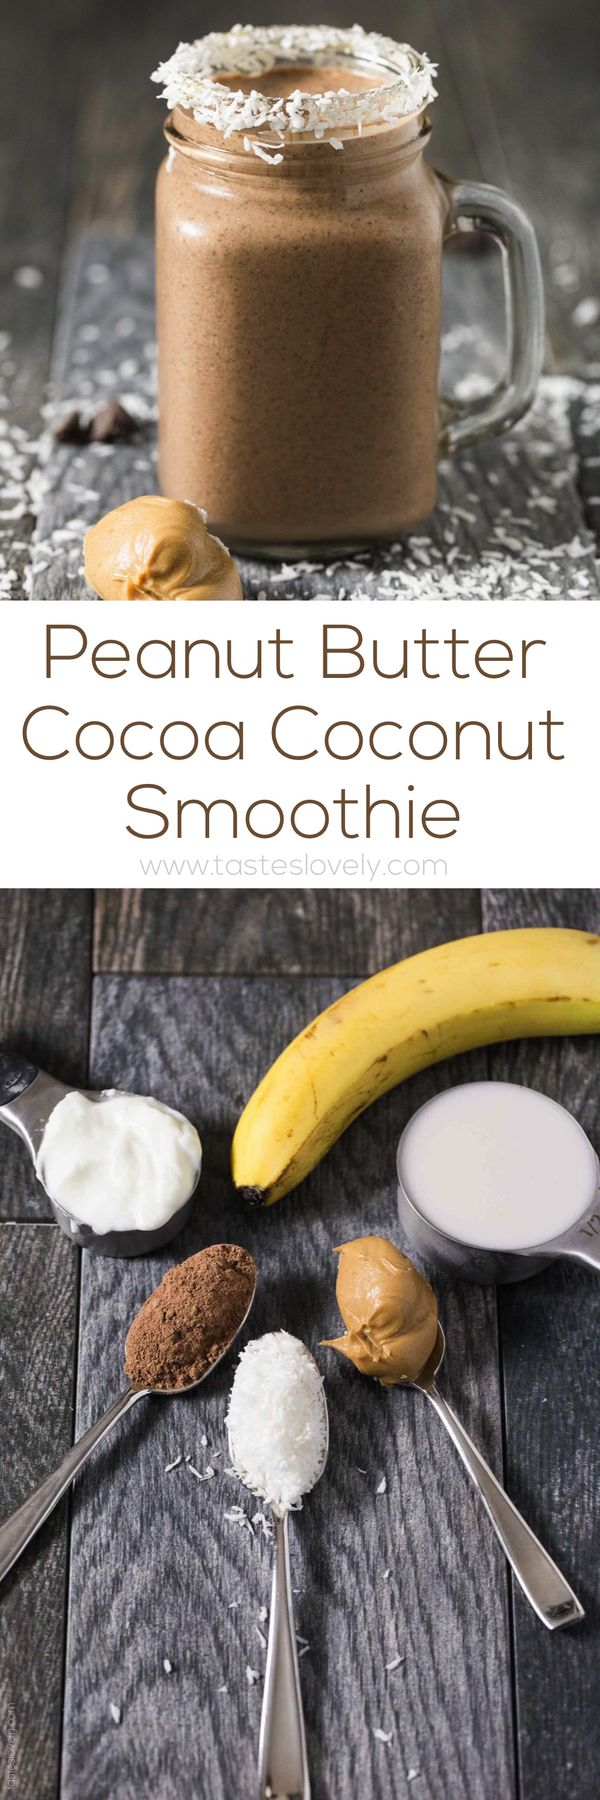 Peanut Butter Cocoa Coconut Smoothie